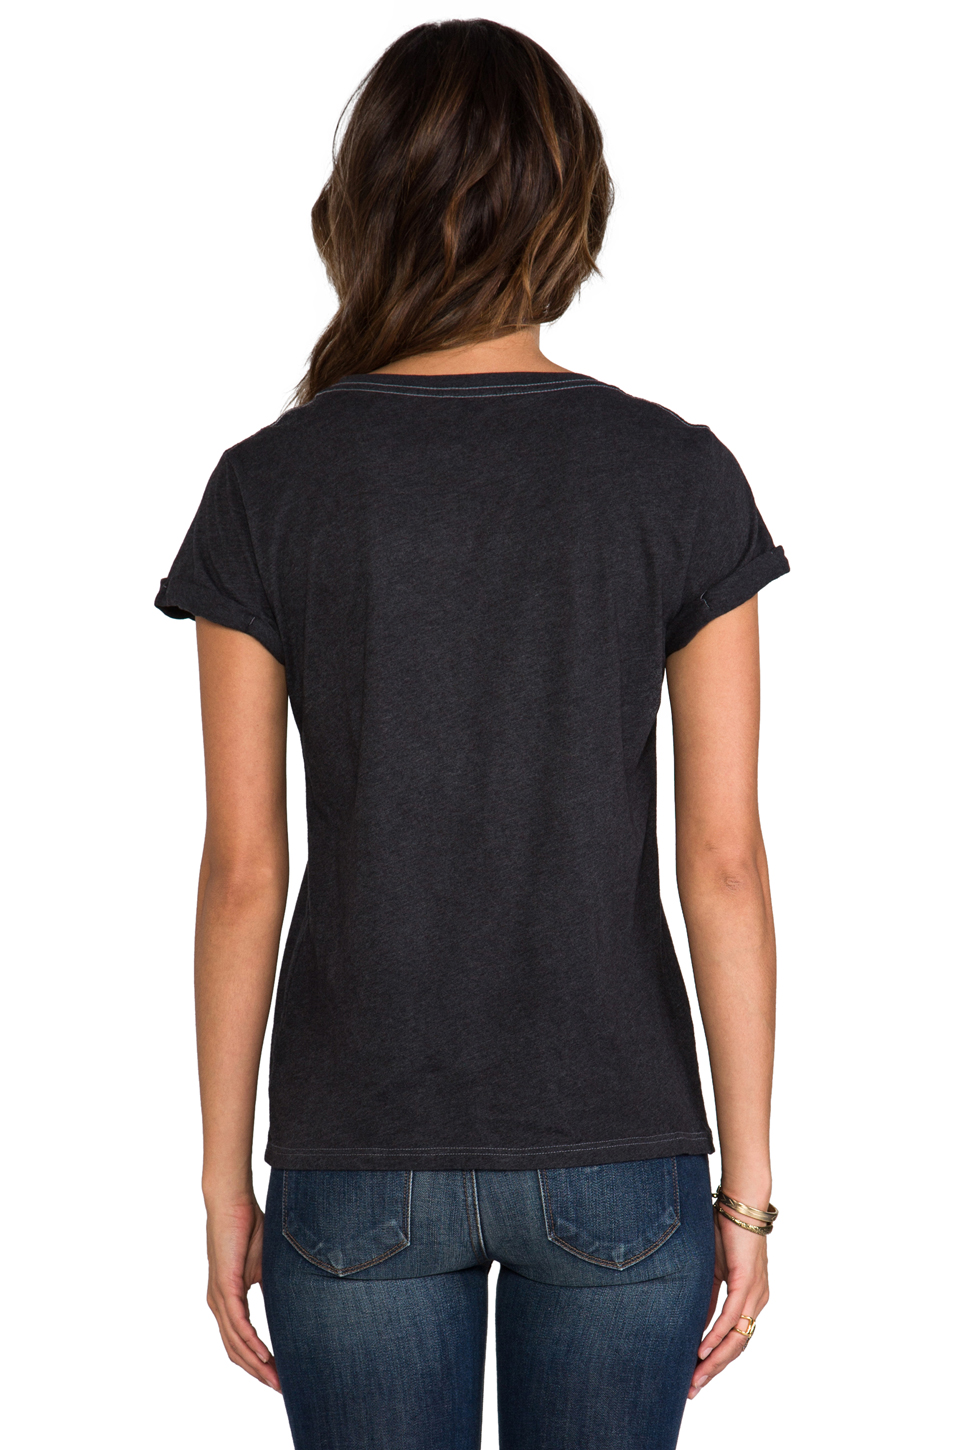 Local Celebrity Tiger At Heart Schiffer Tee in Black